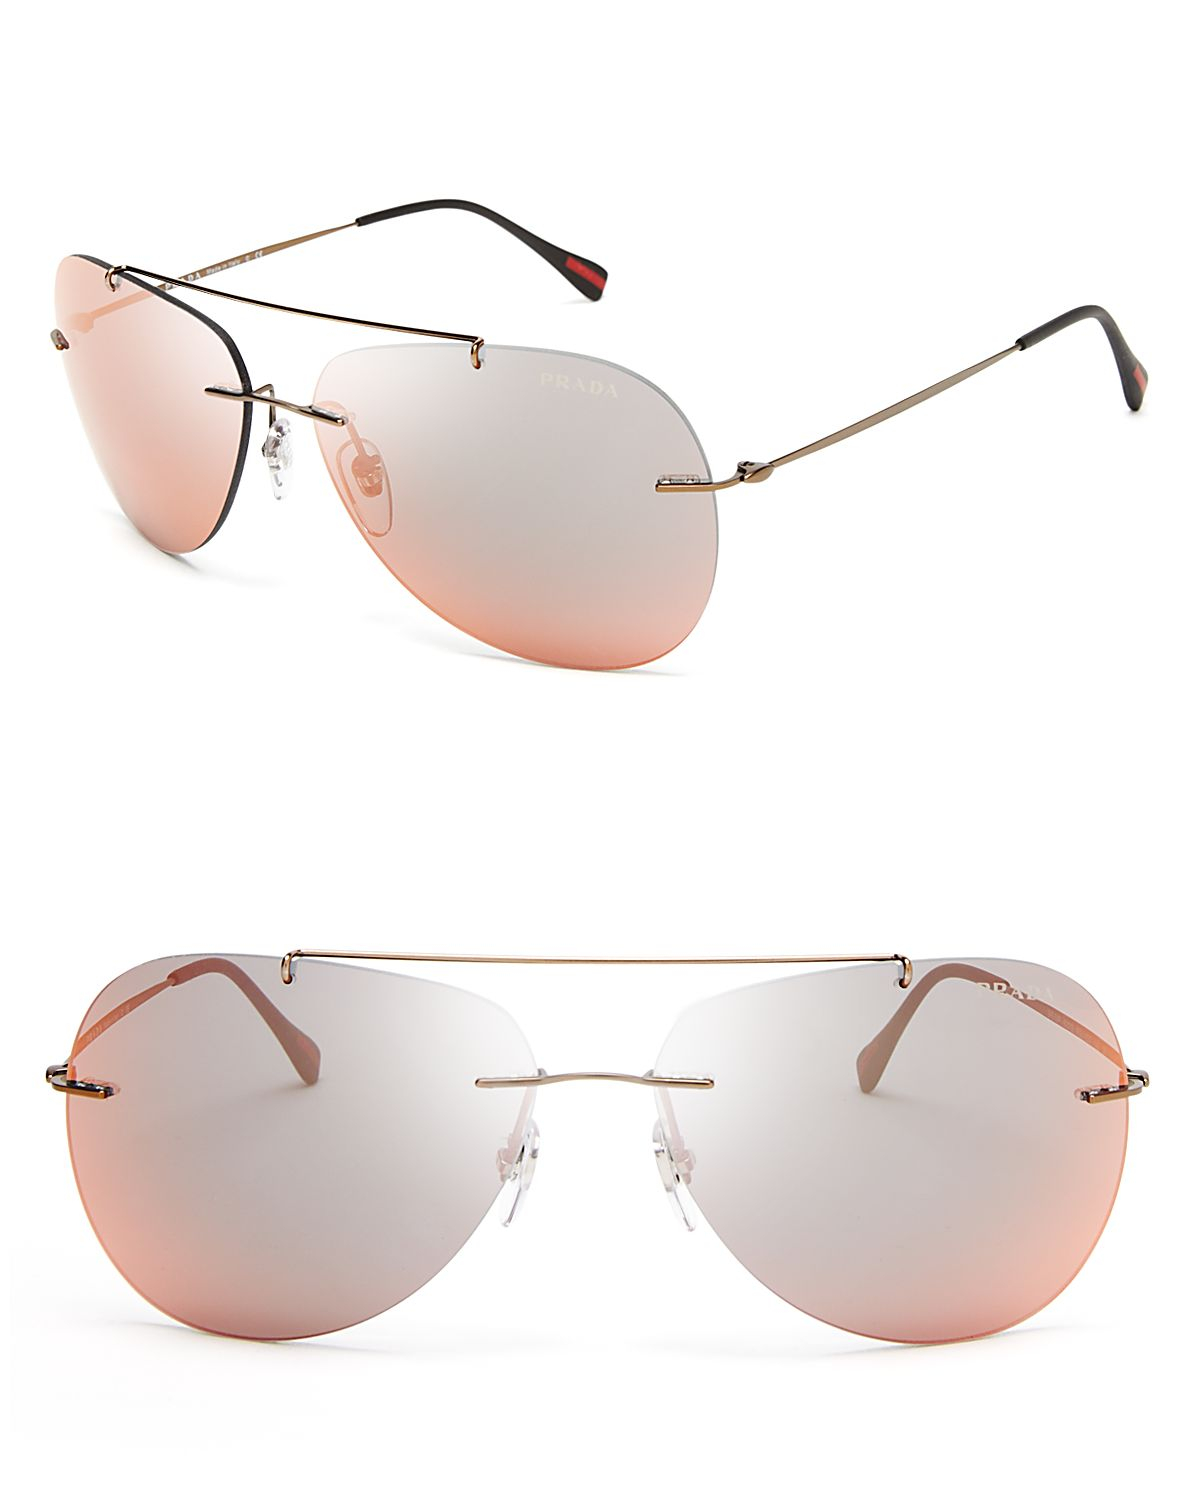 7f49fffad4f ... uk lyst prada mirrored aviator sunglasses in brown for men e0e74 bd20d